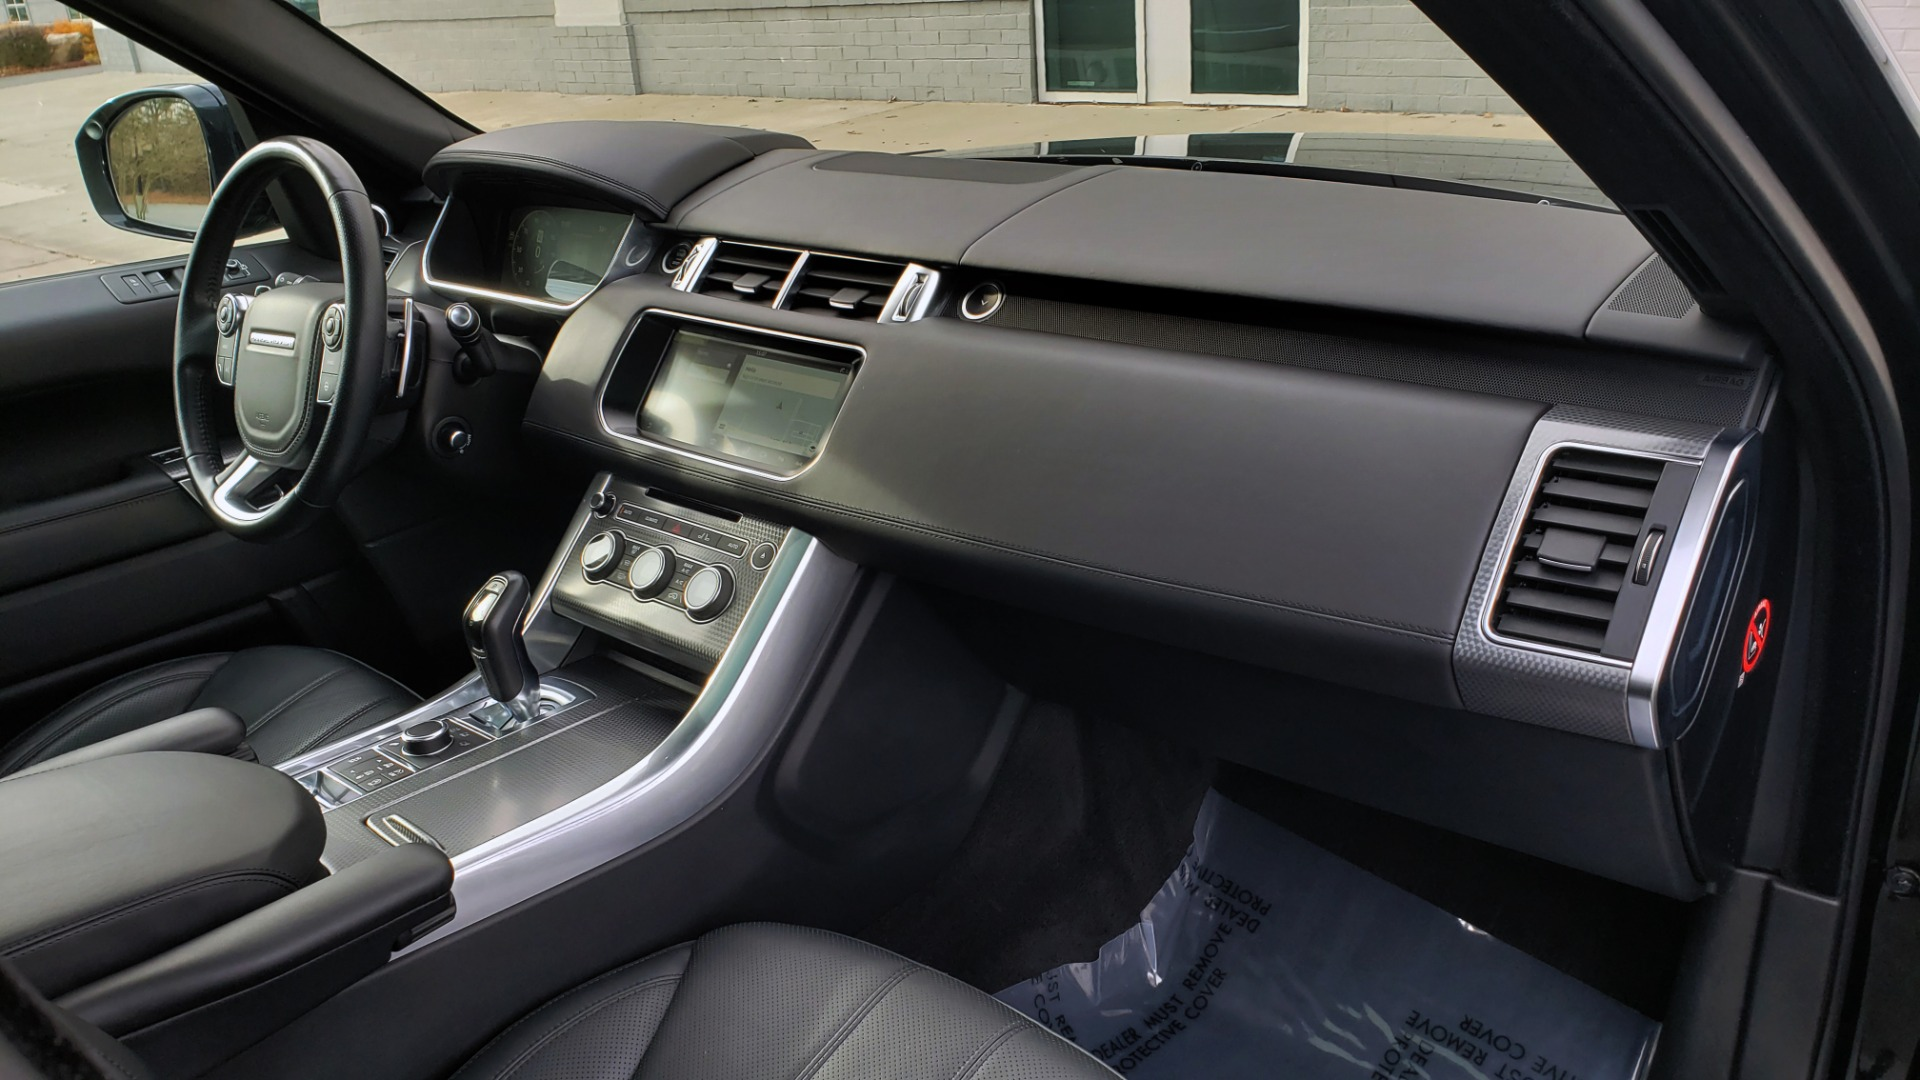 Used 2017 Land Rover RANGE ROVER SPORT HSE DYNAMIC / SC V6 / NAV / MERIDIAN / PANO-ROOF / REARVIEW for sale Sold at Formula Imports in Charlotte NC 28227 75